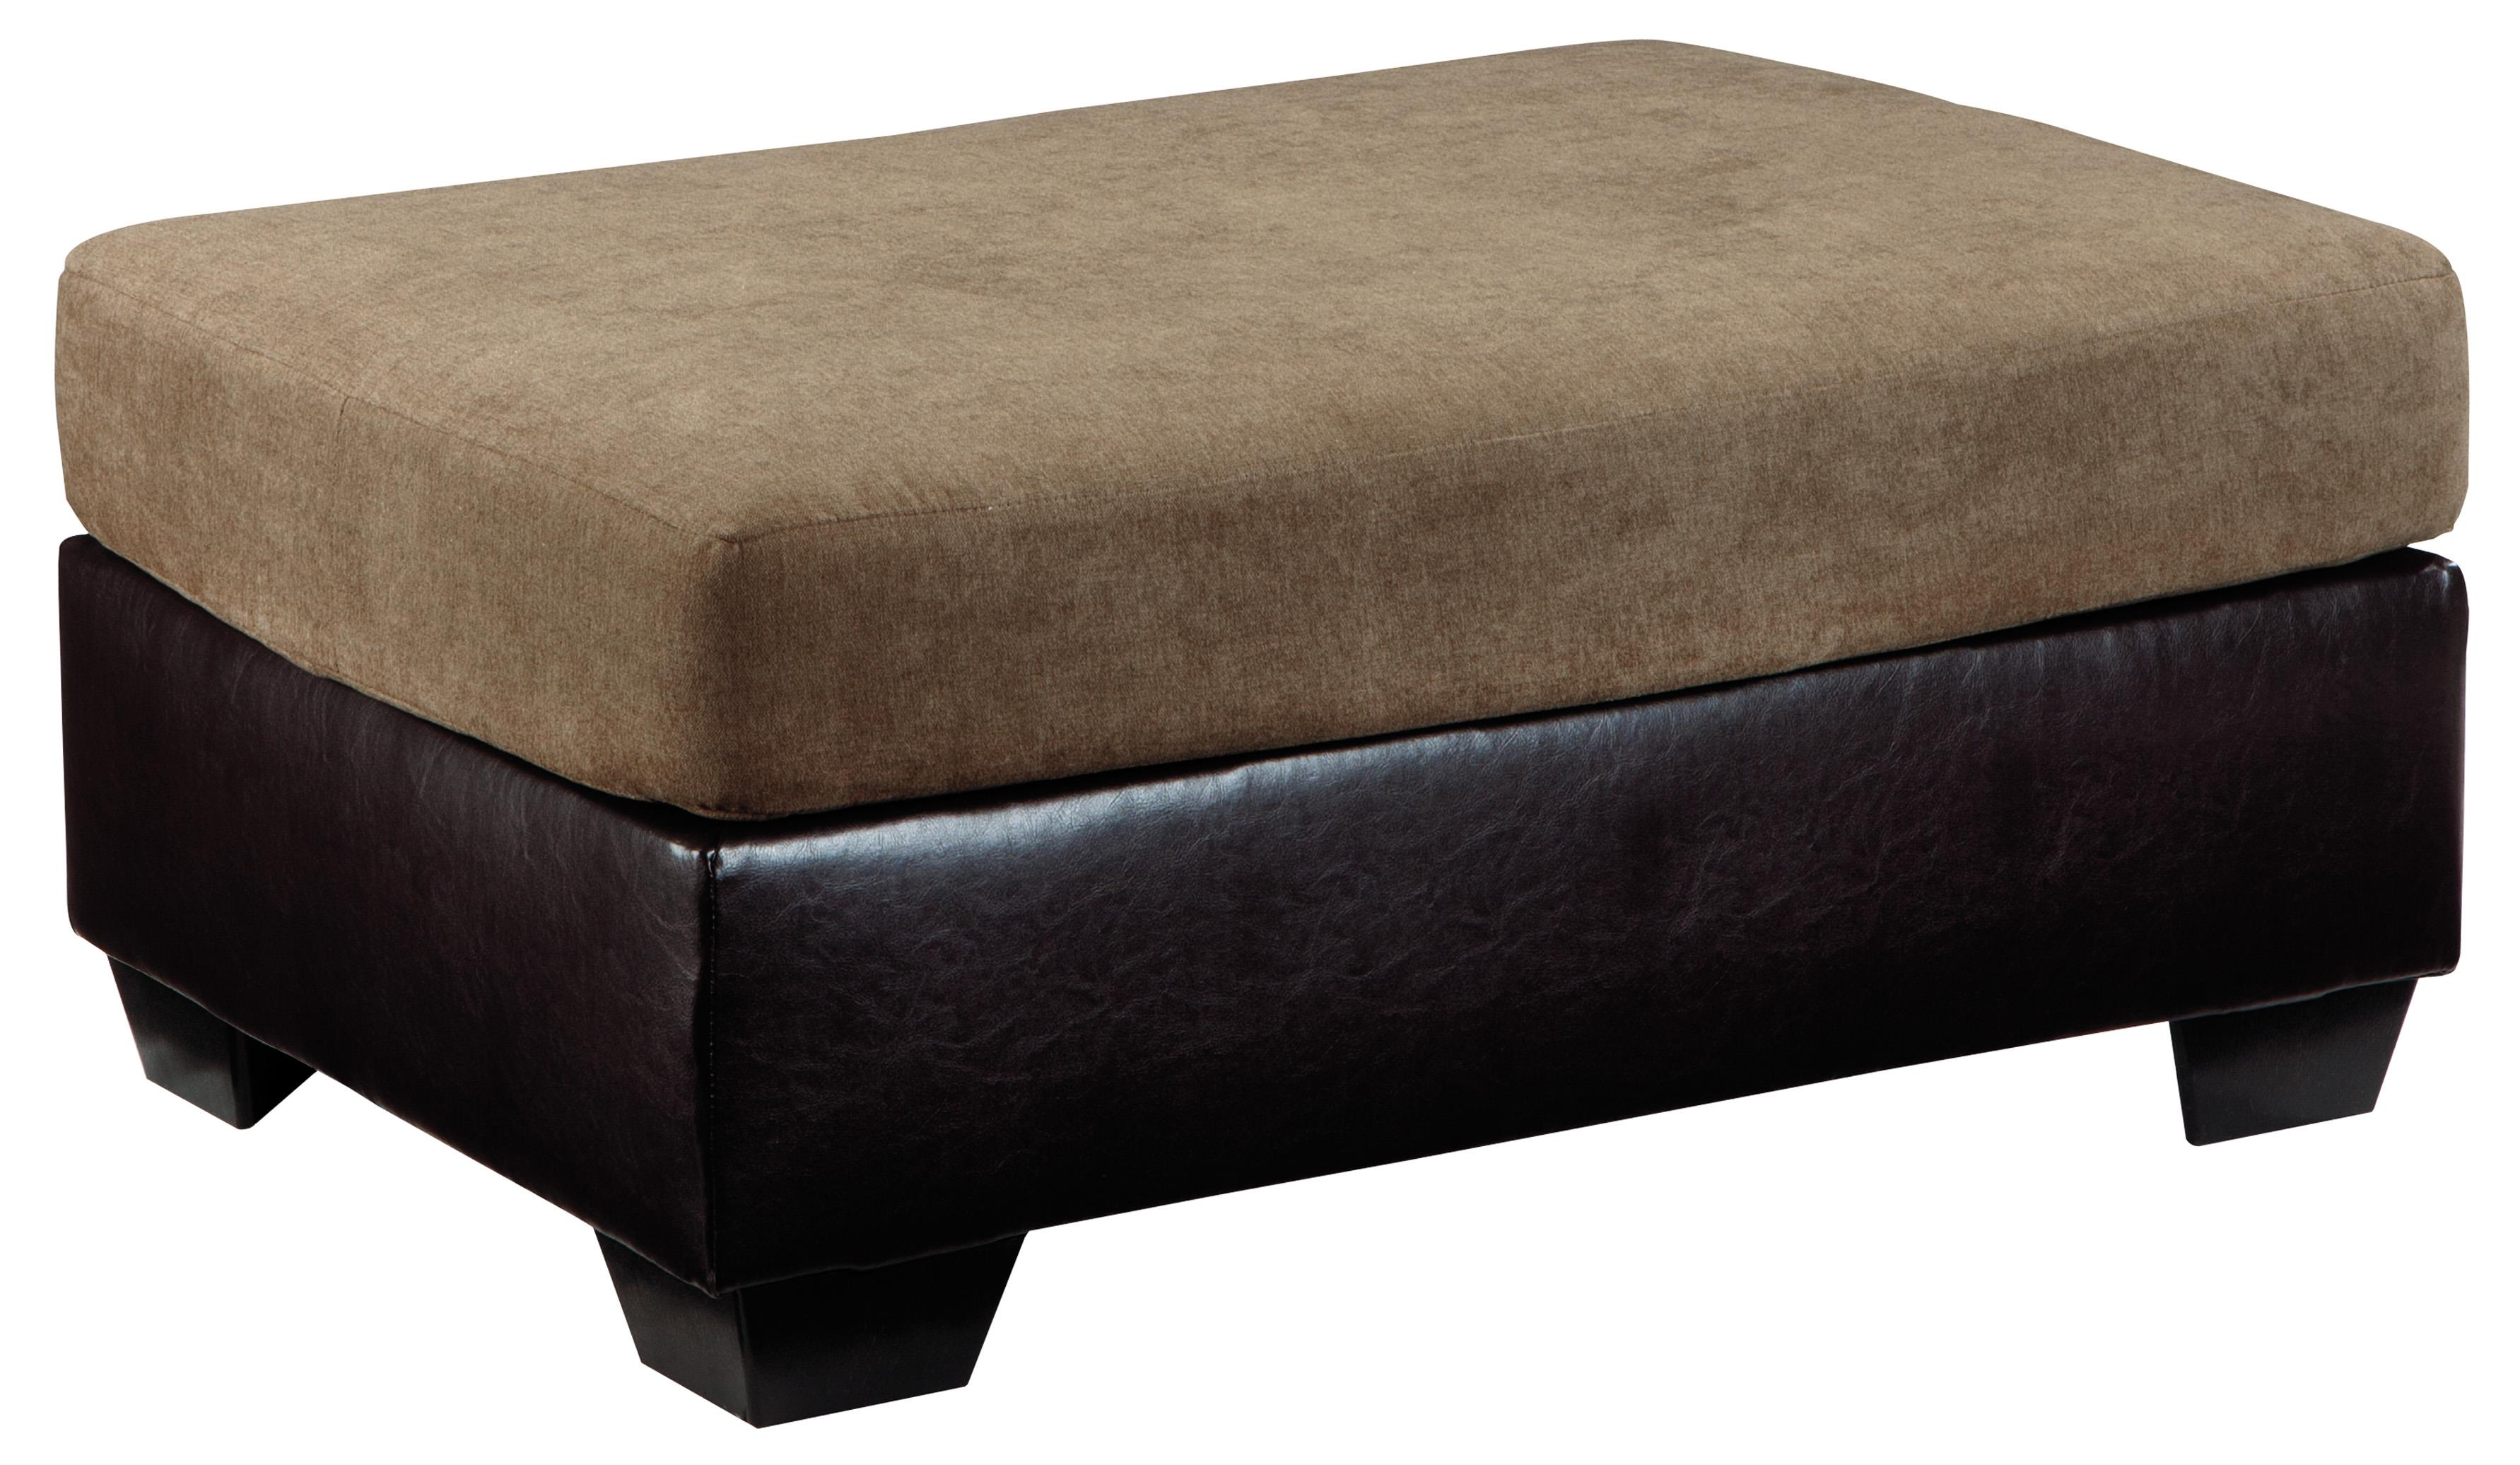 Signature Design by Ashley Armant Oversized Accent Ottoman - Item Number: 2020208